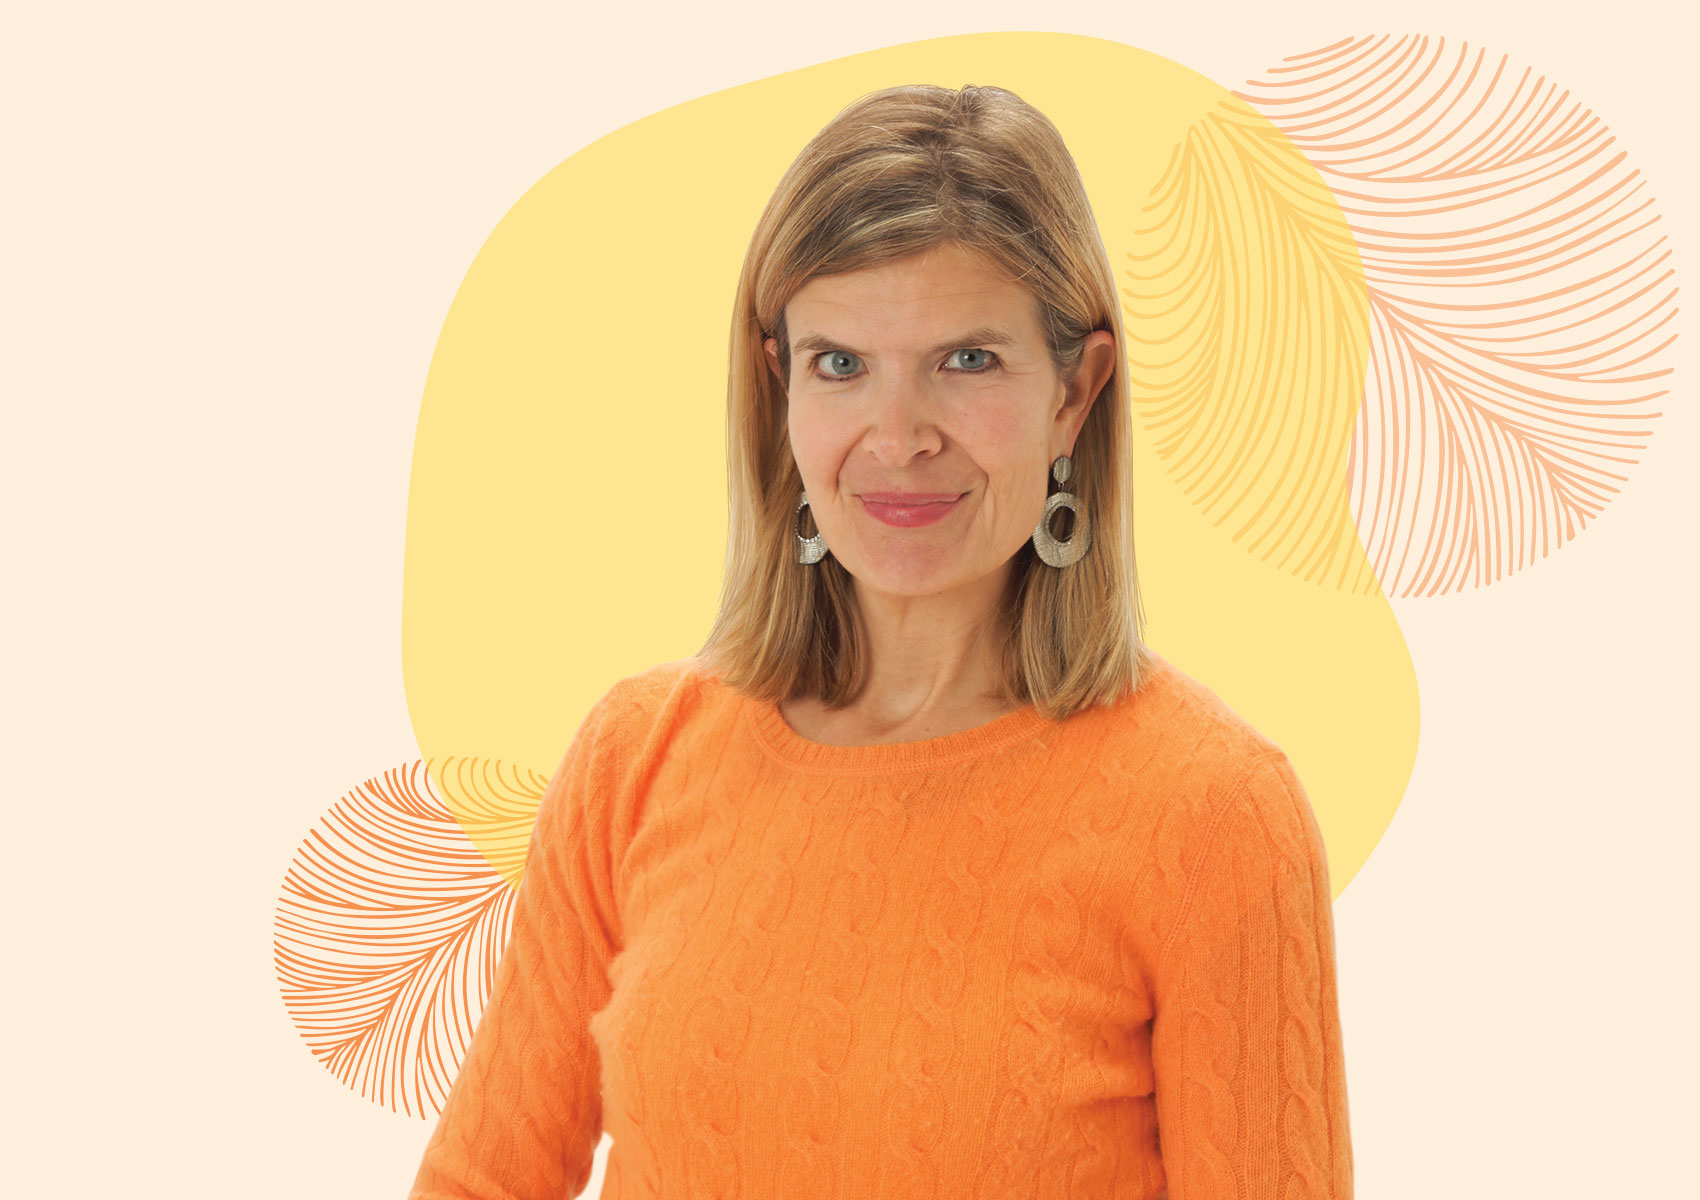 Wherever the Wind Blows: A Q&A With Karen Brux